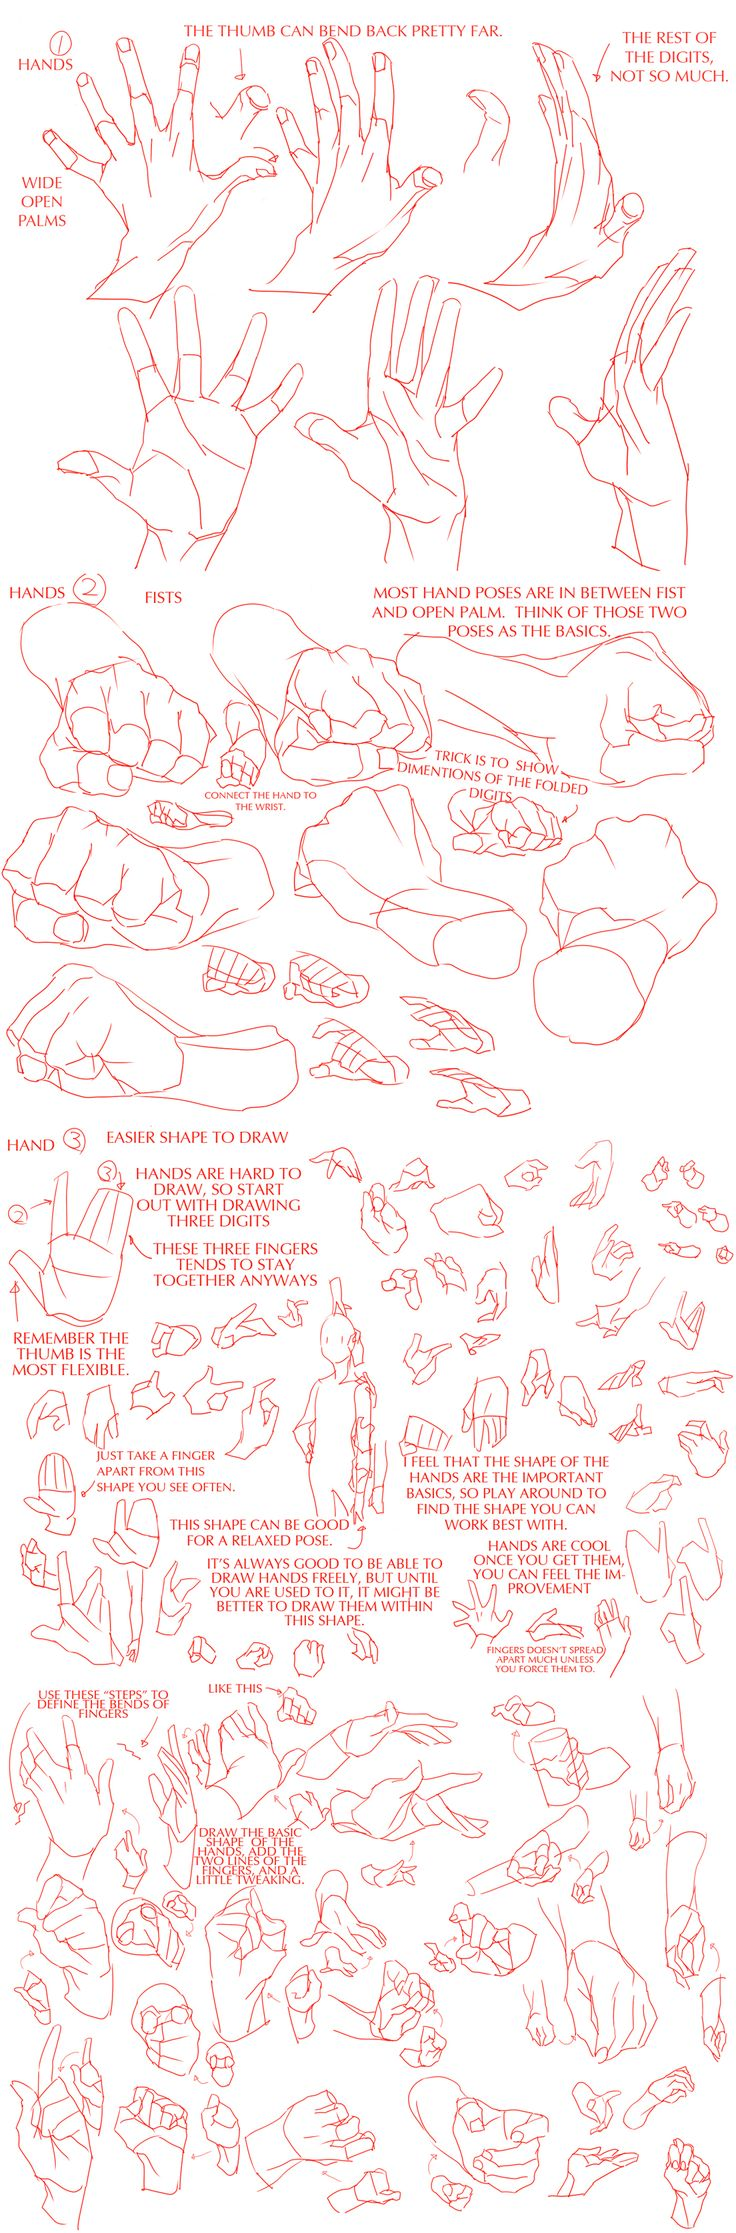 """via teamtrashcan.tumblr.com (unable to pin from there) """"Hands Tutorials for Those Who Hates Drawing Them""""   """"Original can be found on Pixiv, I just translated it. I figured it can be helpful to some. Here's a combined version for those who prefer one giant tutorial."""""""